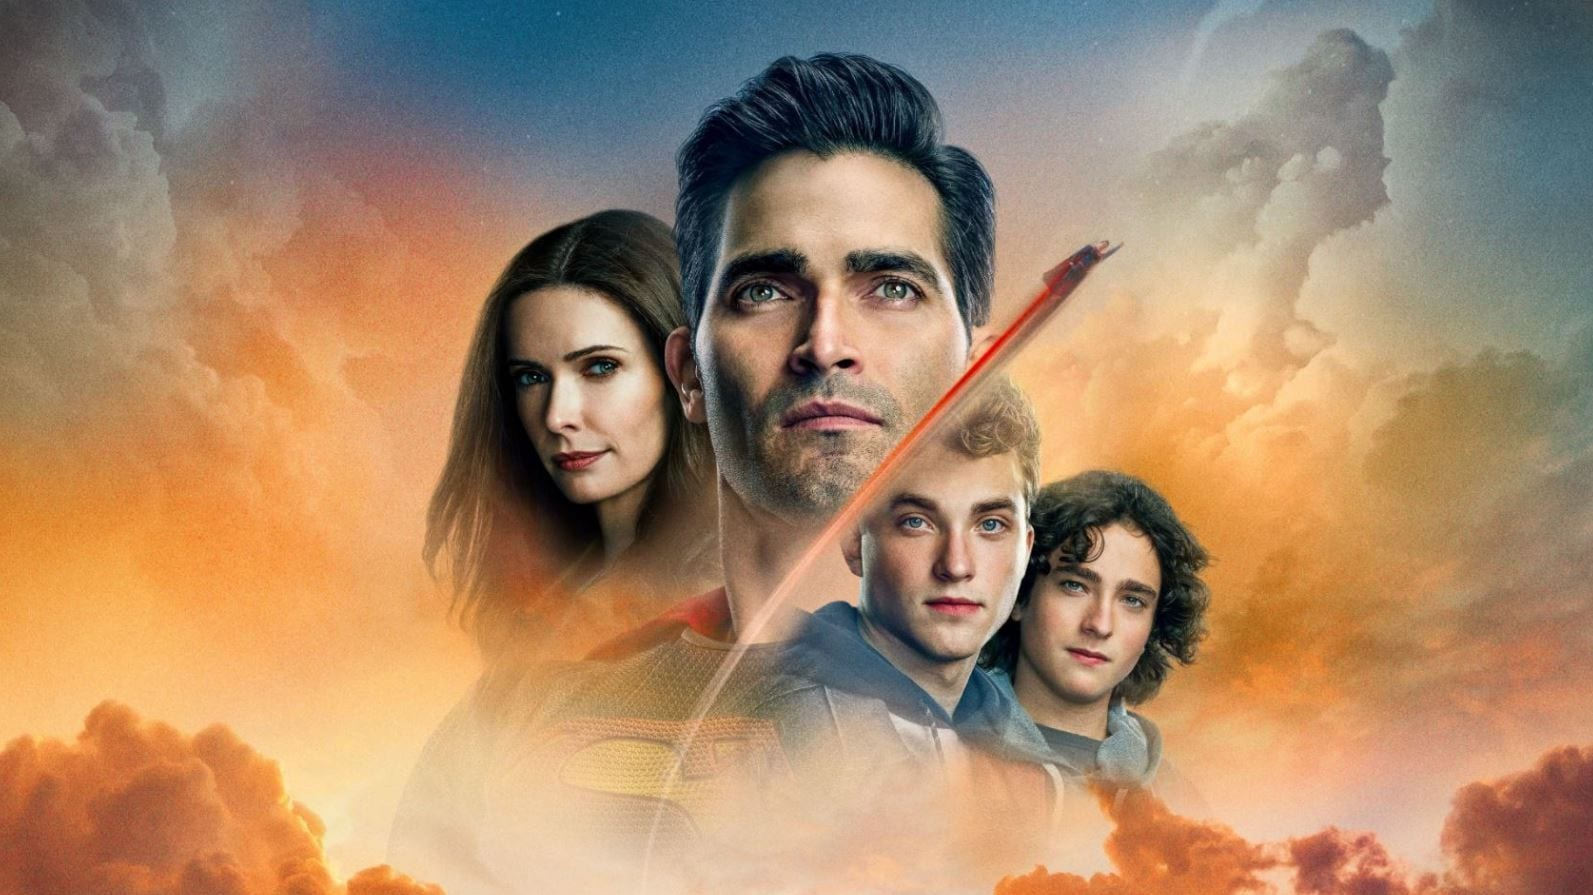 Is Superman & Lois Coming To Netflix? Where to Watch?